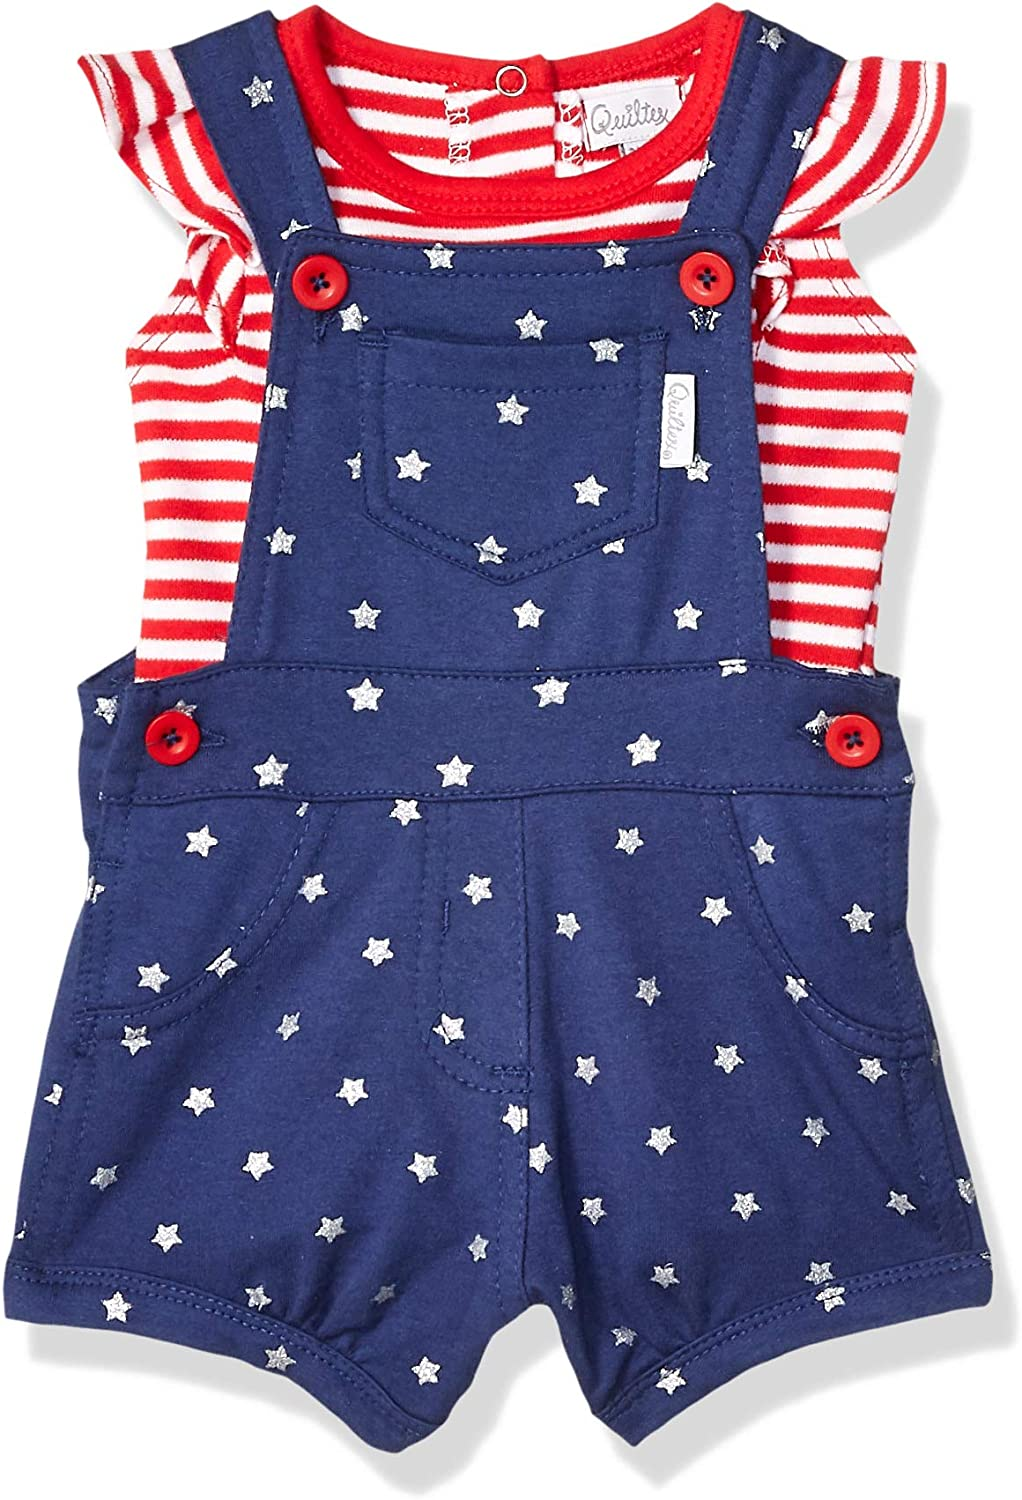 Quiltex Baby Girls Toddler Stars 2 Pc Shortall Set and Bodysuit